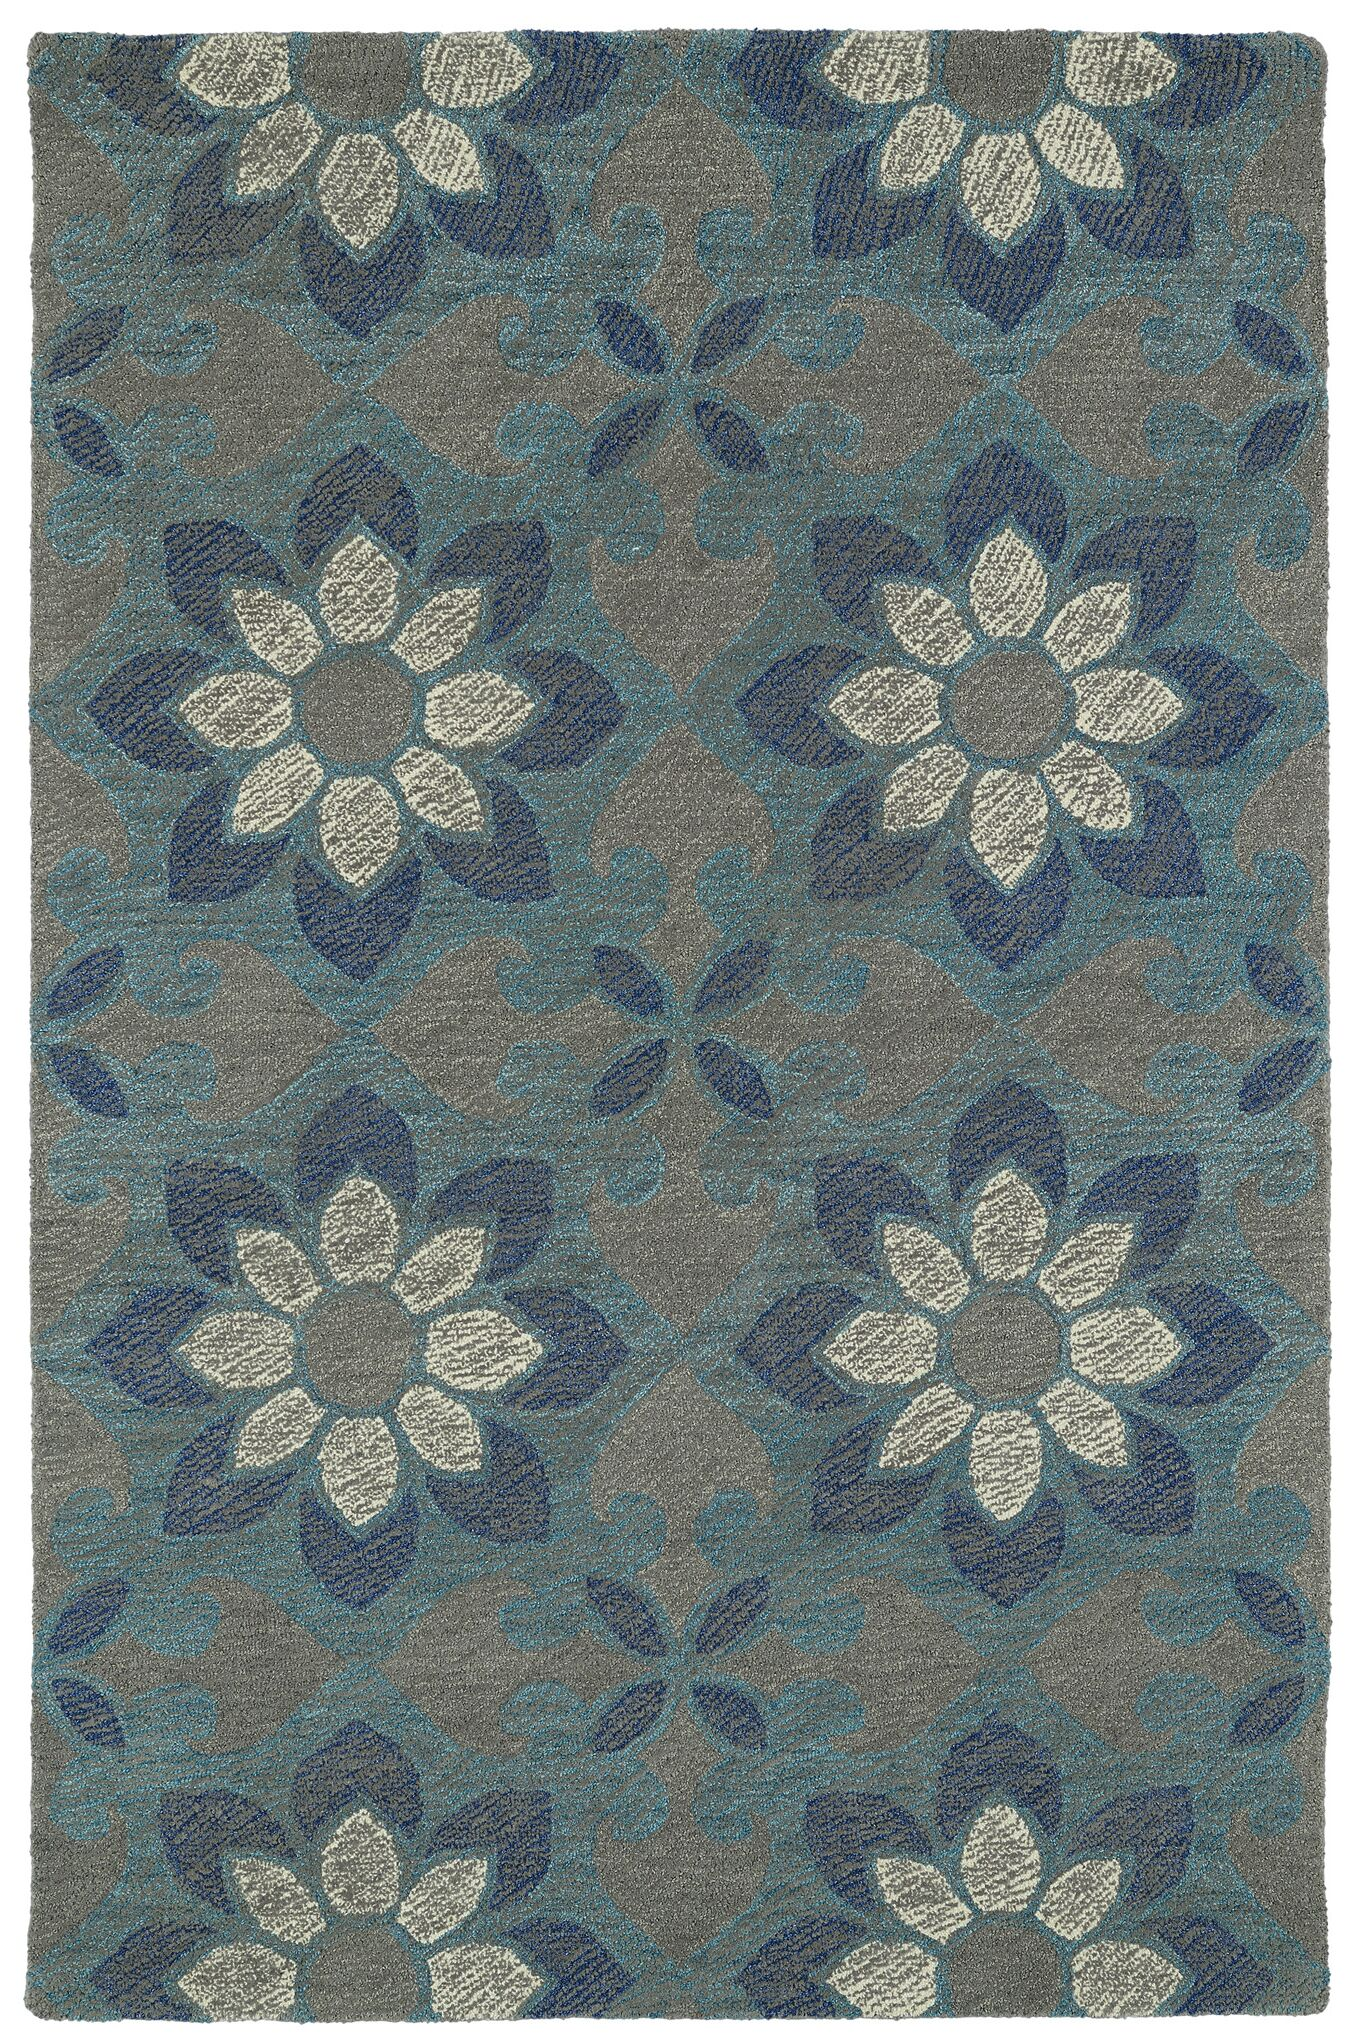 Hand-Tufted Blue Area Rug Rug Size: Rectangle 5' x 9'